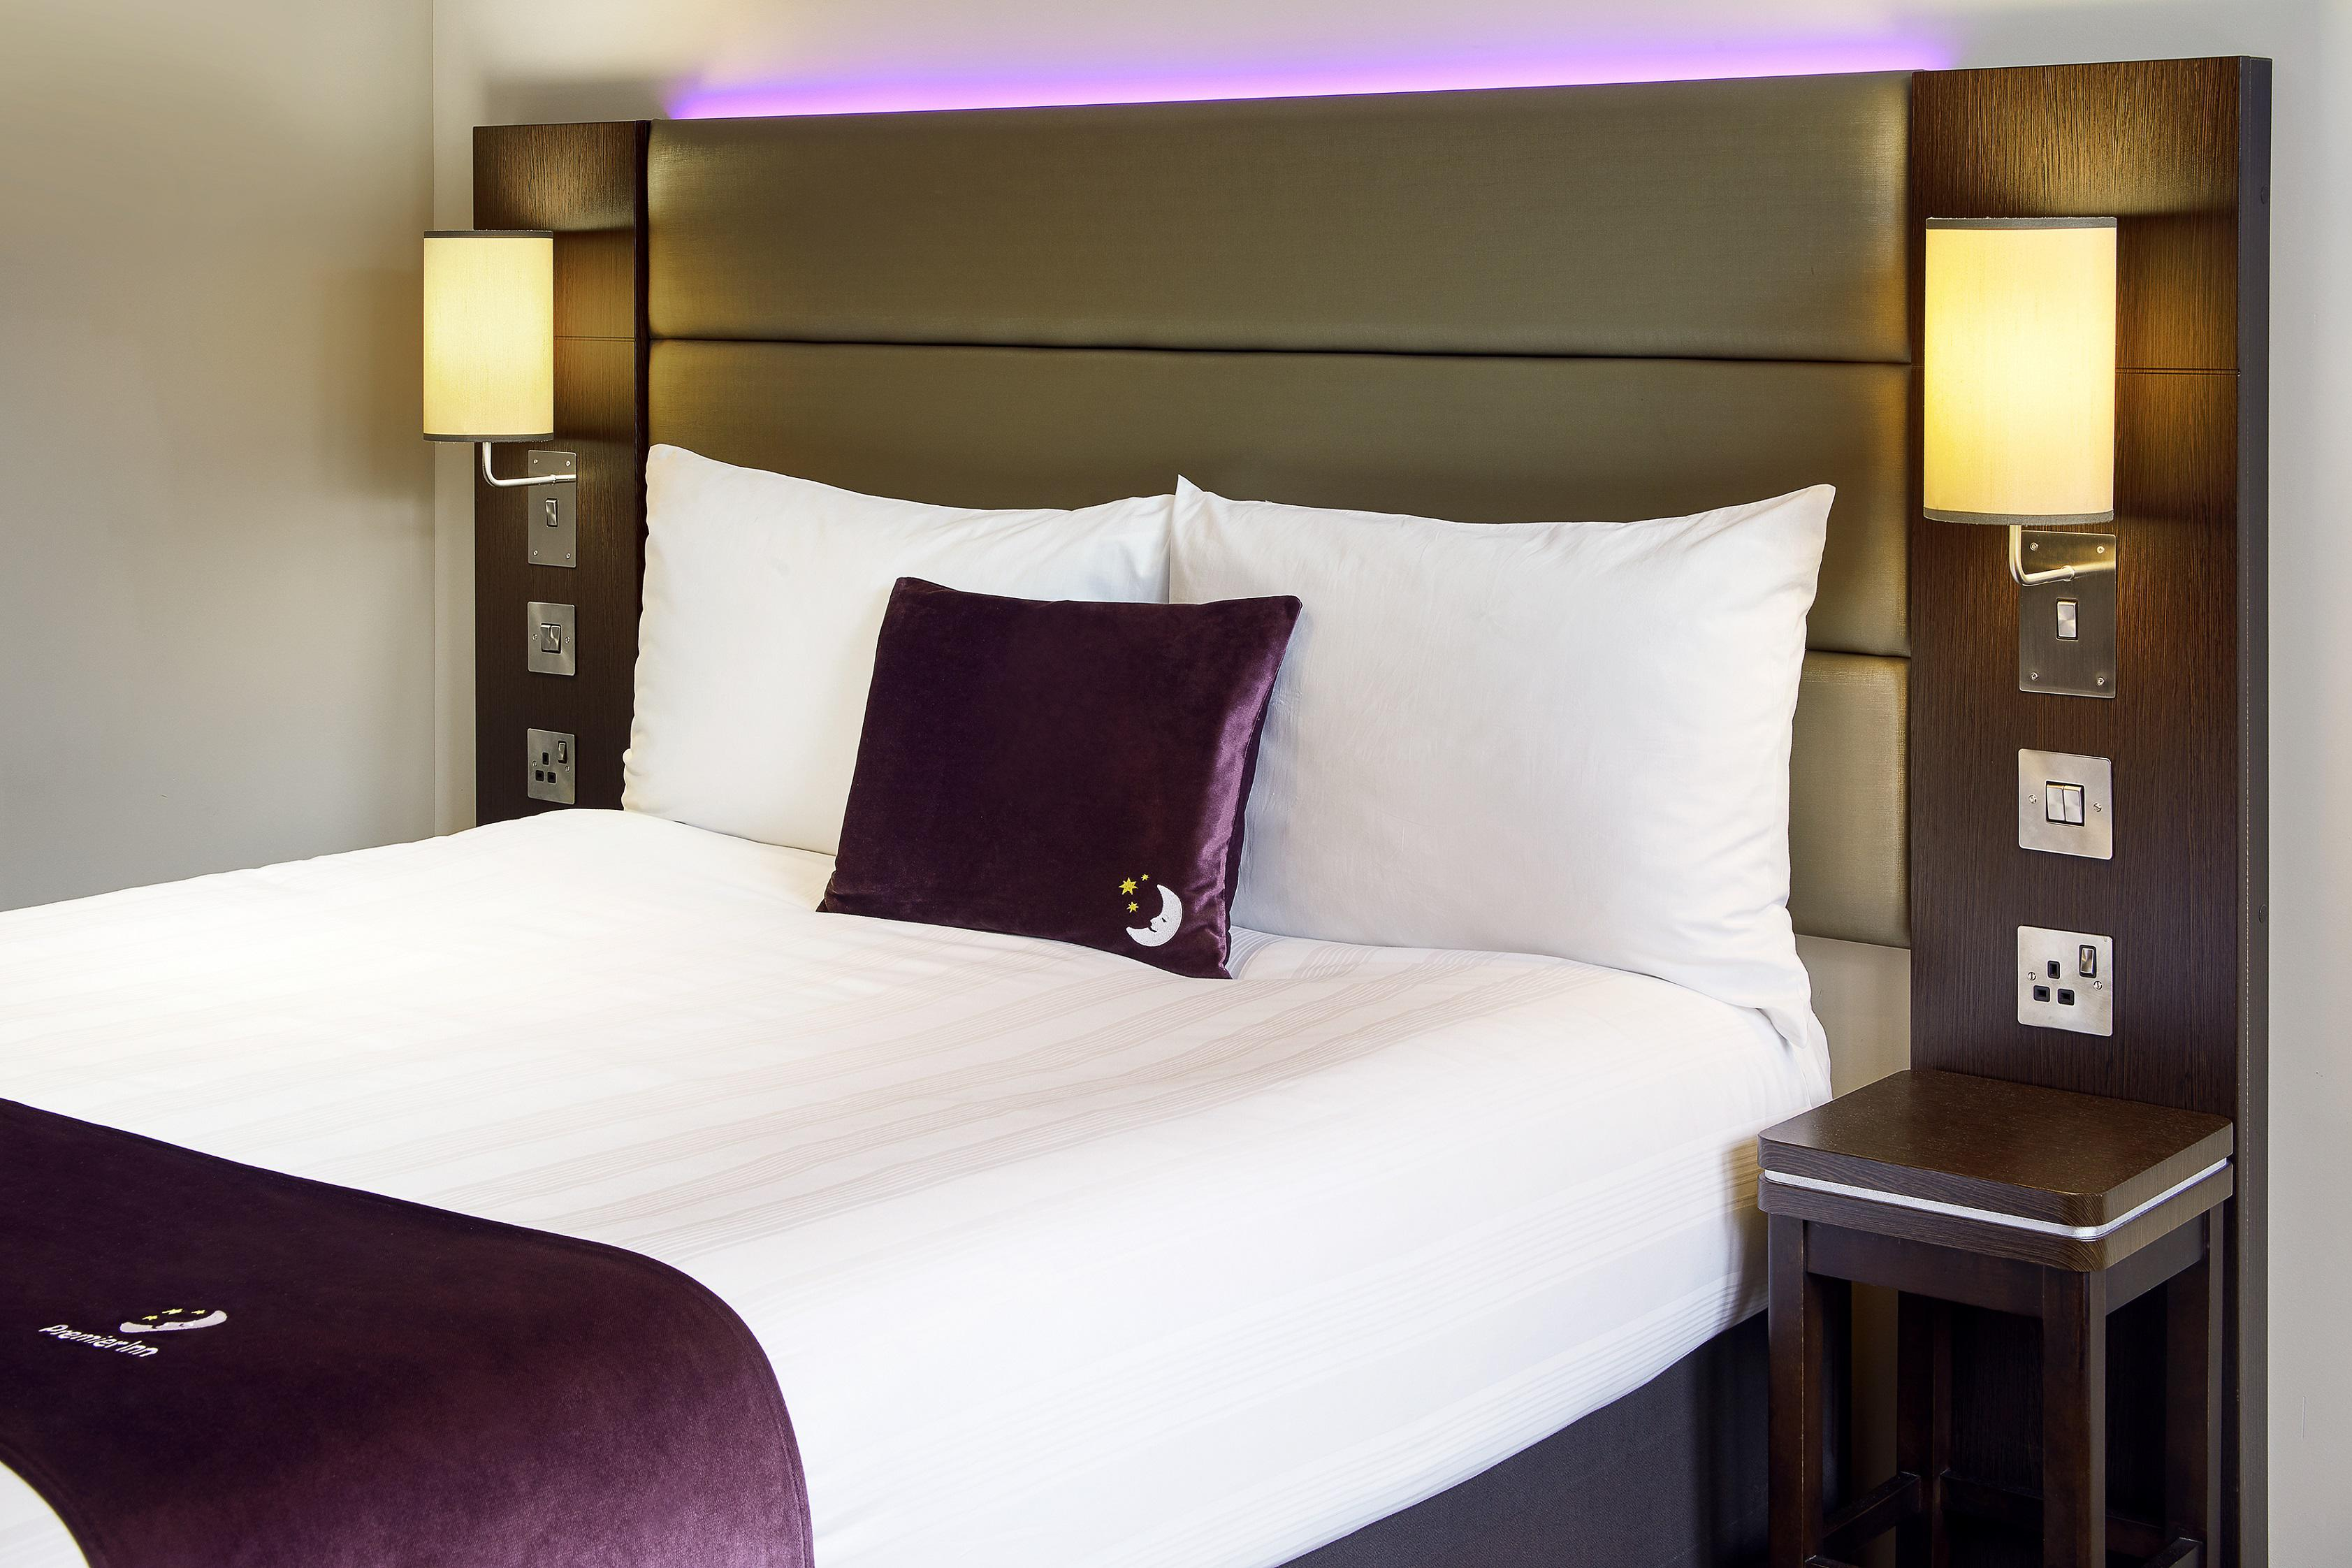 Premier Inn High Wycombe Beaconsfield